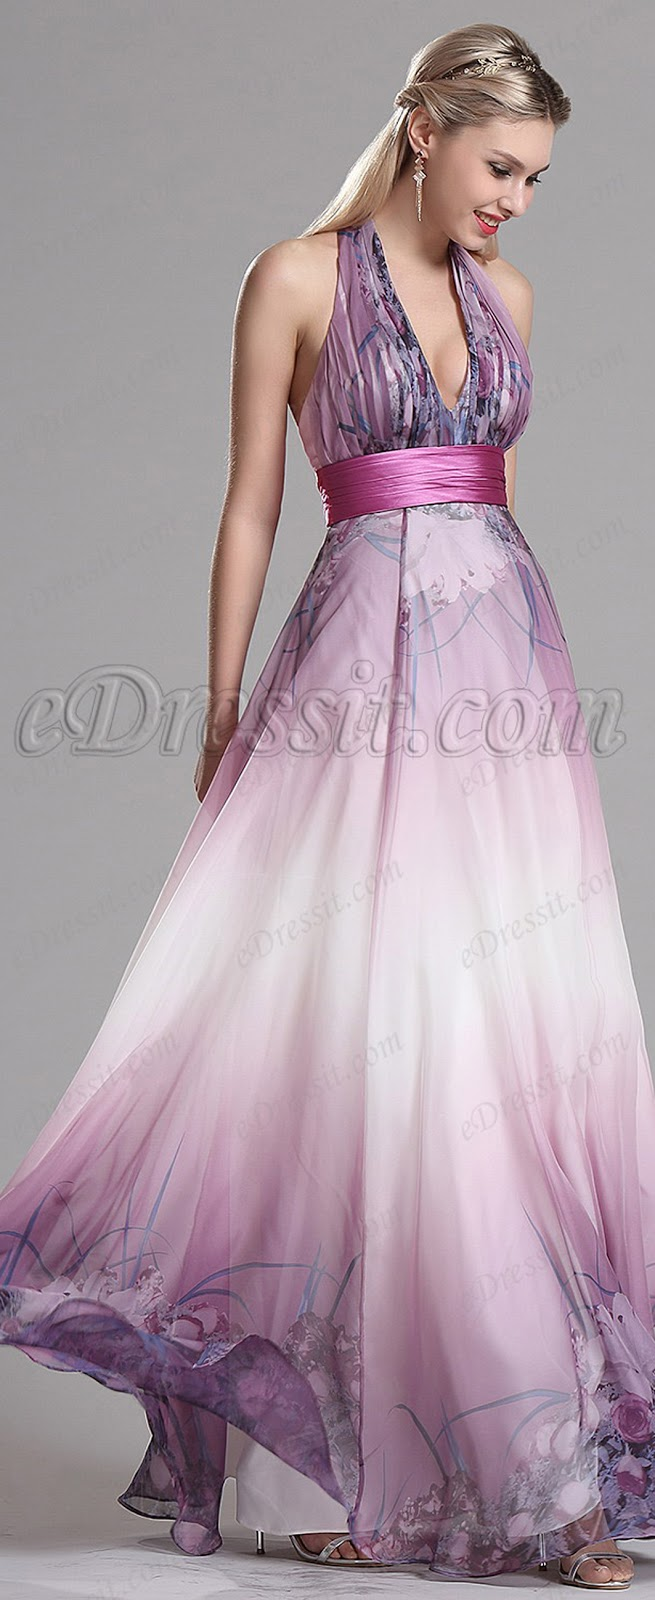 http://www.edressit.com/edressit-purple-halter-floral-a-line-evening-dress-x07158006-_p4647.html